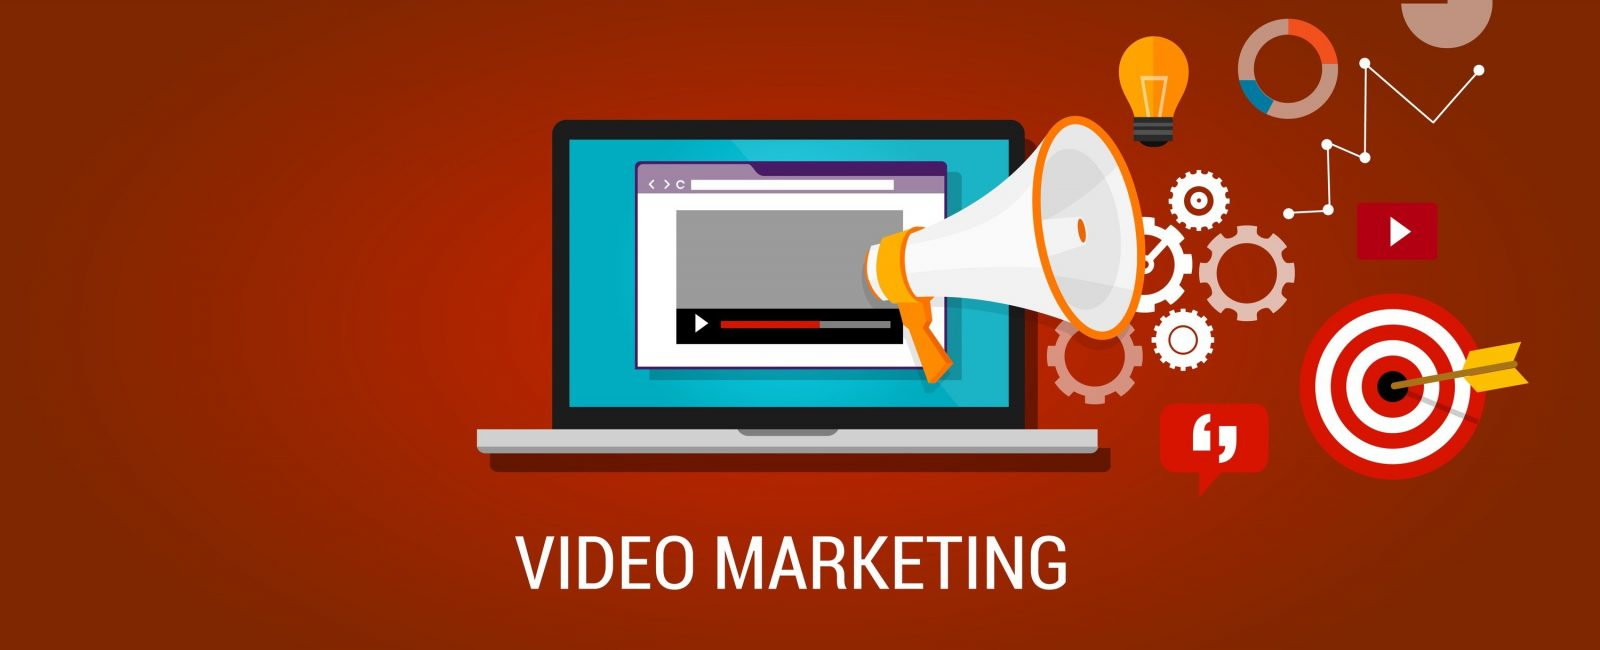 What Is Video Marketing? Trends And Benefits In Social Networks